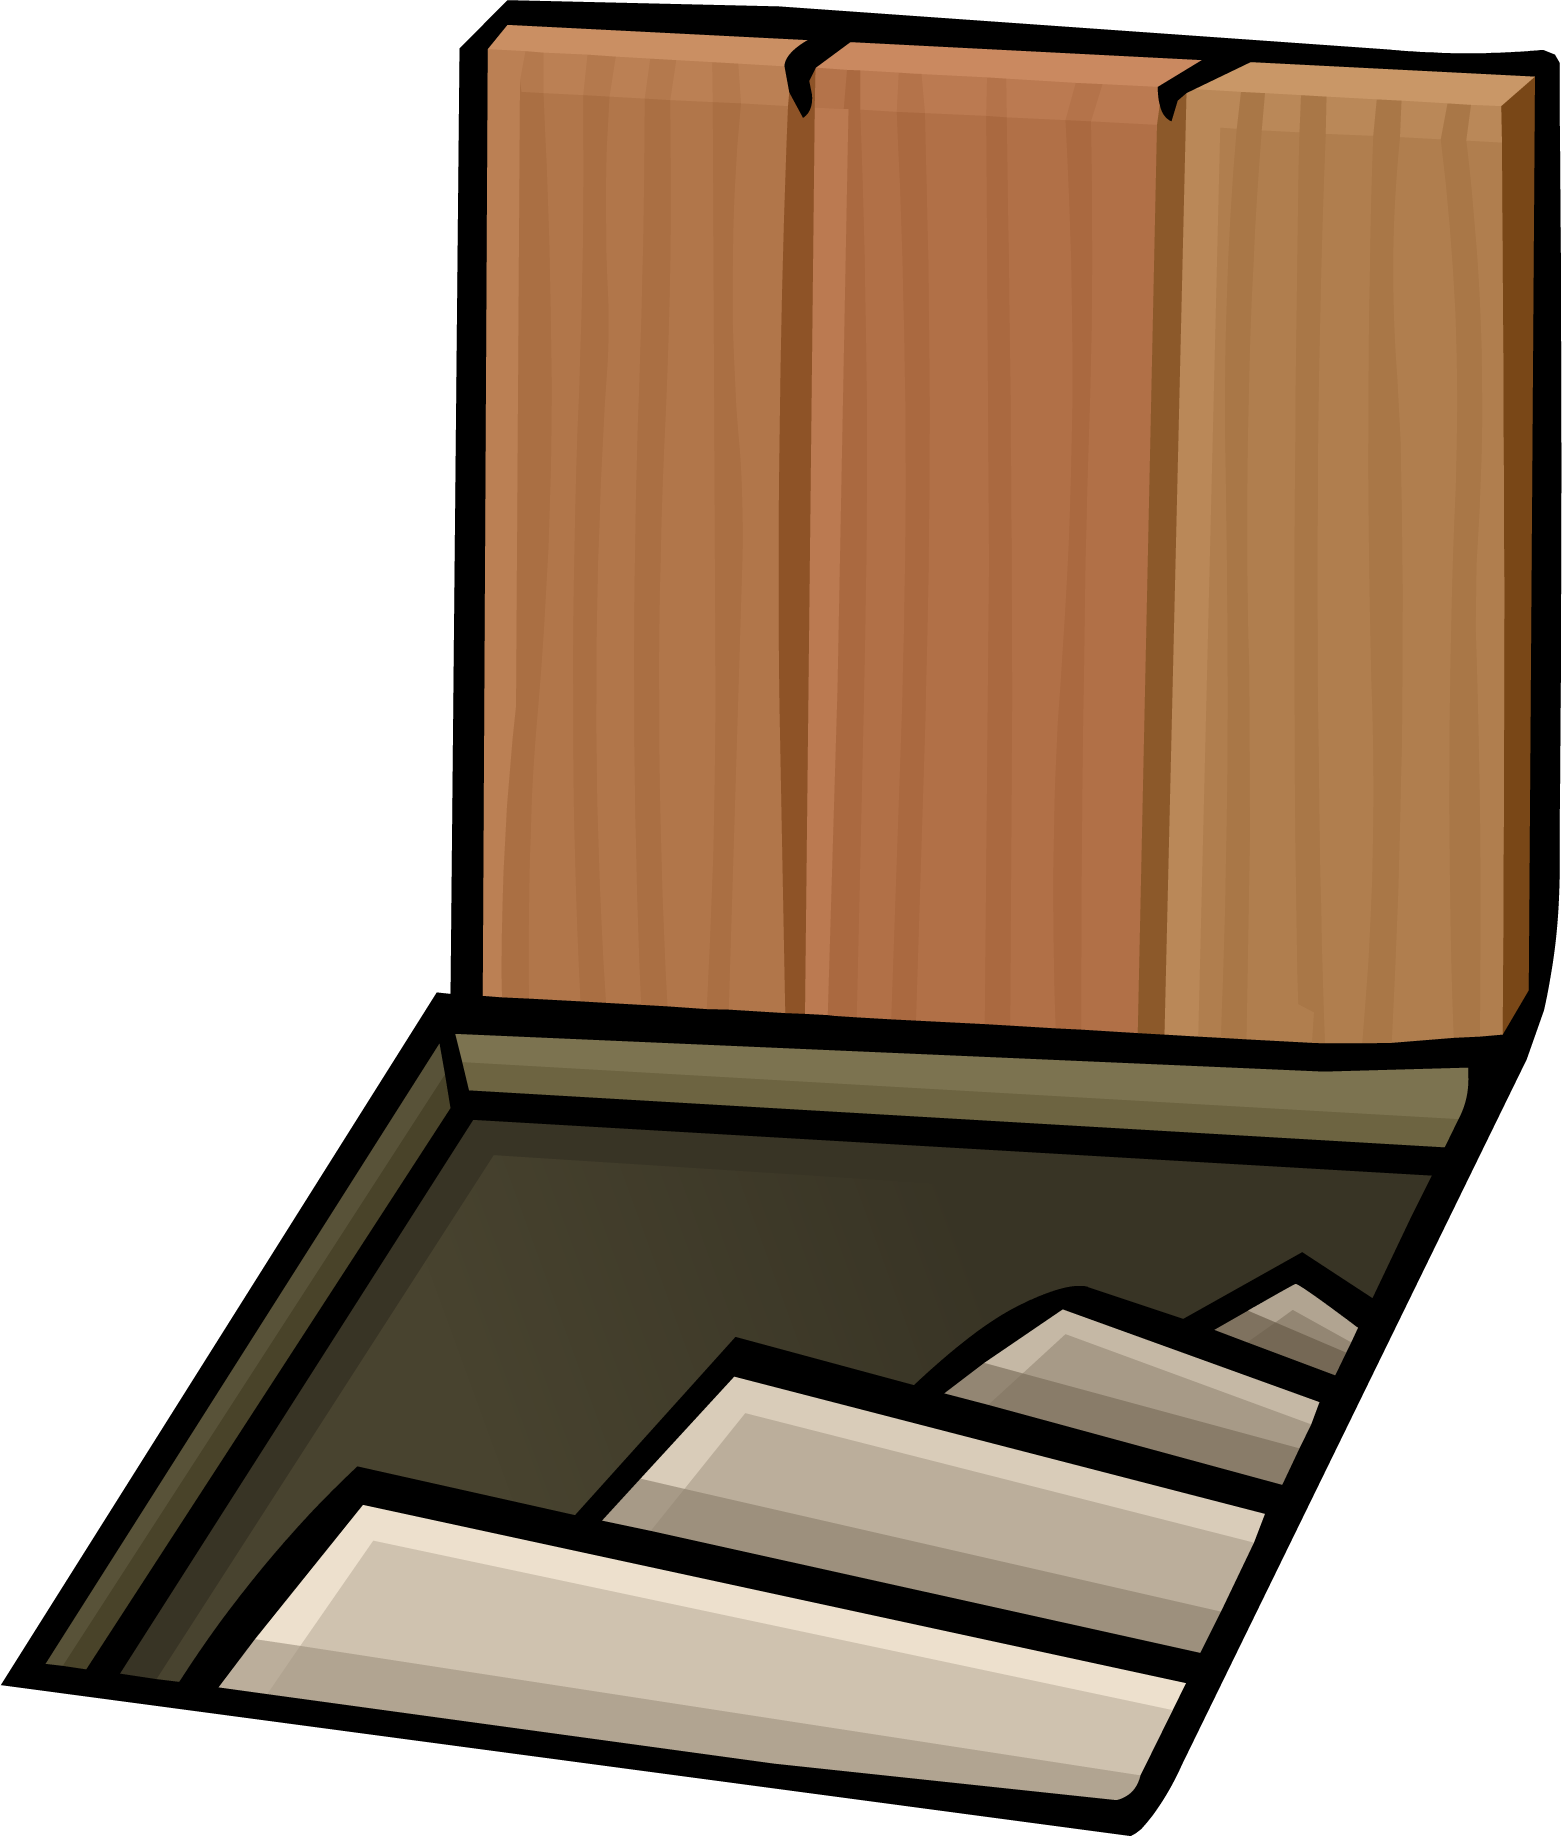 Image - Trap Door open.png | Club Penguin Wiki | FANDOM powered by Wikia  sc 1 st  Club Penguin Wiki - Fandom & Image - Trap Door open.png | Club Penguin Wiki | FANDOM powered by ... pezcame.com